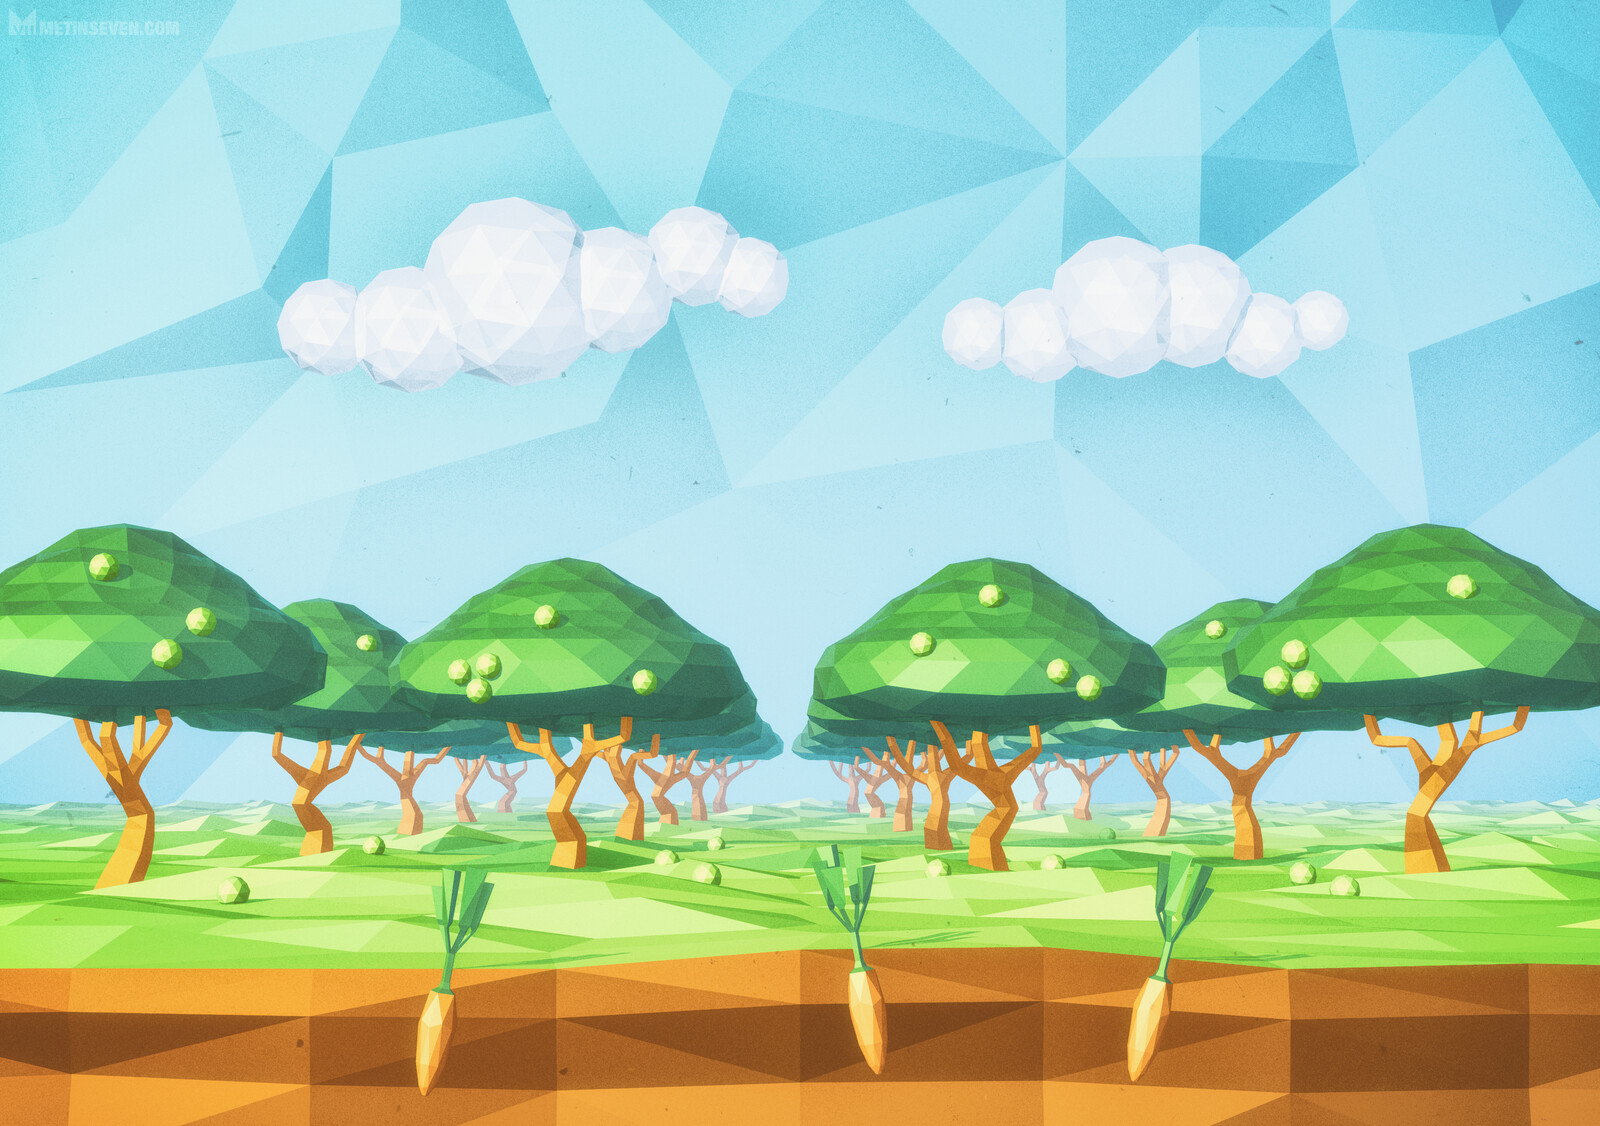 Low-polygon orchard